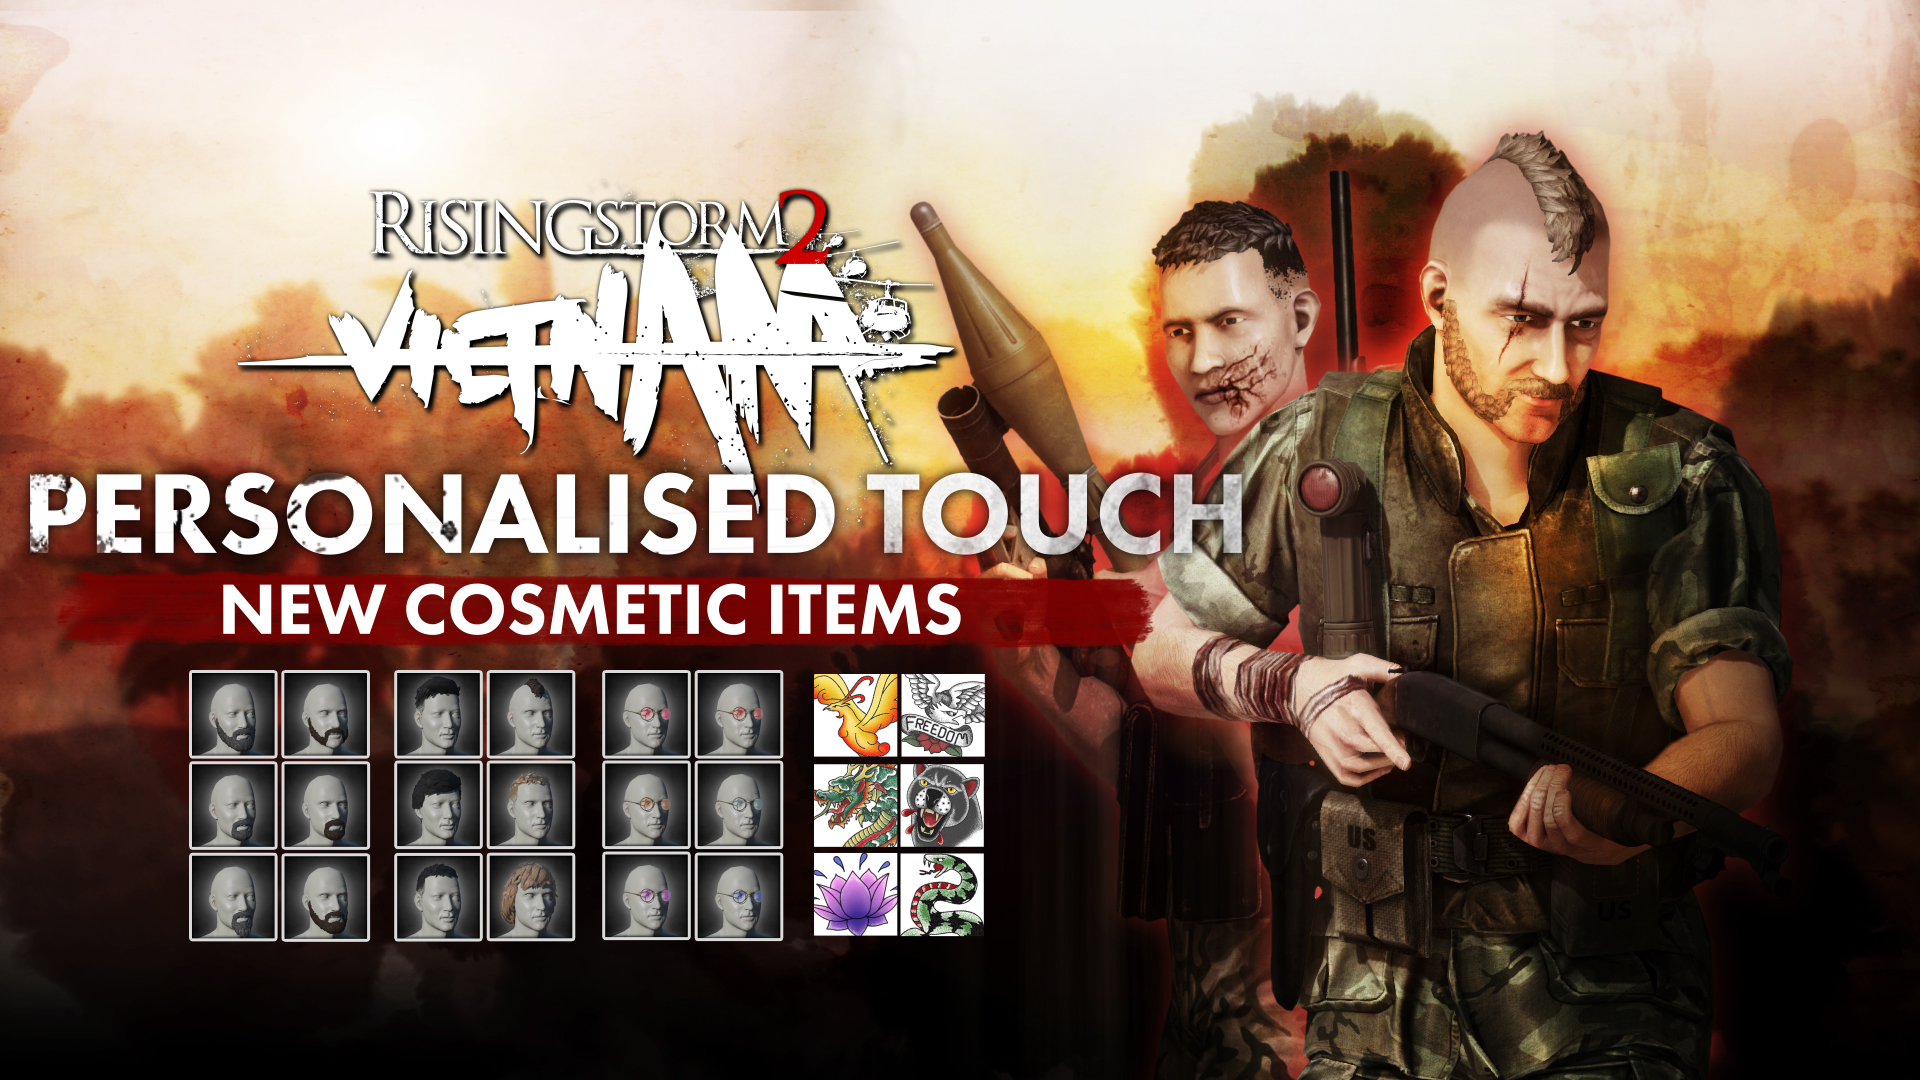 Rising Storm 2: Vietnam - Personalized Touch Cosmetic DLC screenshot